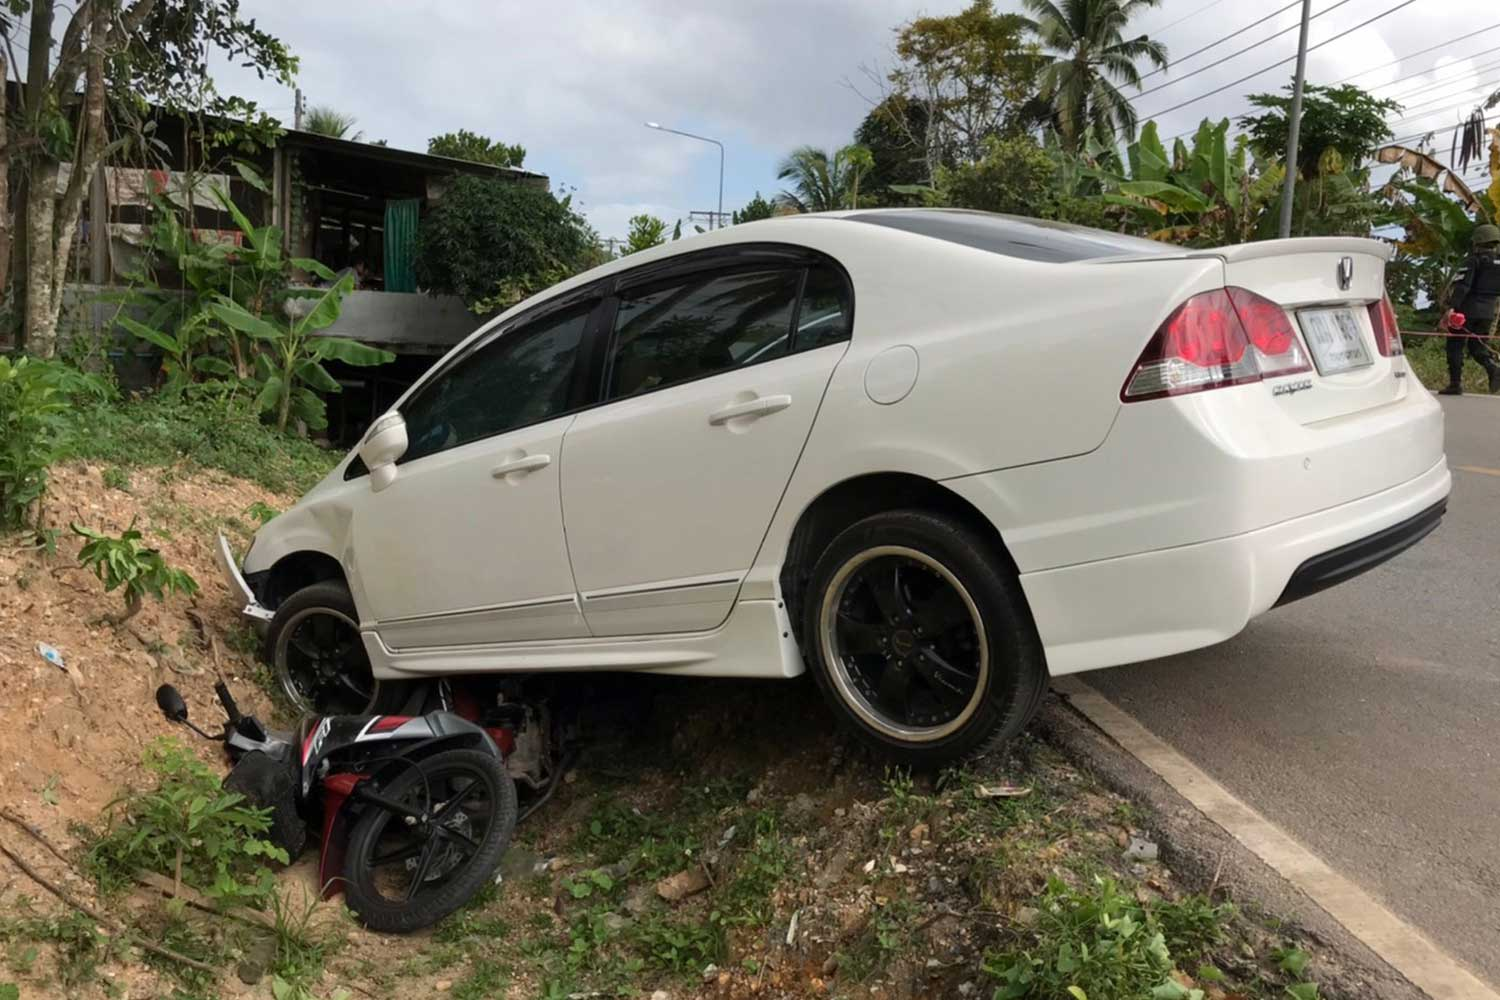 A car is found on a roadside ditch with a motorcycle of two assailants stuck underneath following a shooting attack on the driver in Thung Yang Daeng district, Pattani on Saturday morning. The assailants managed to flee on a stolen motorcycle. (Photo: Abdullah Benjakat)